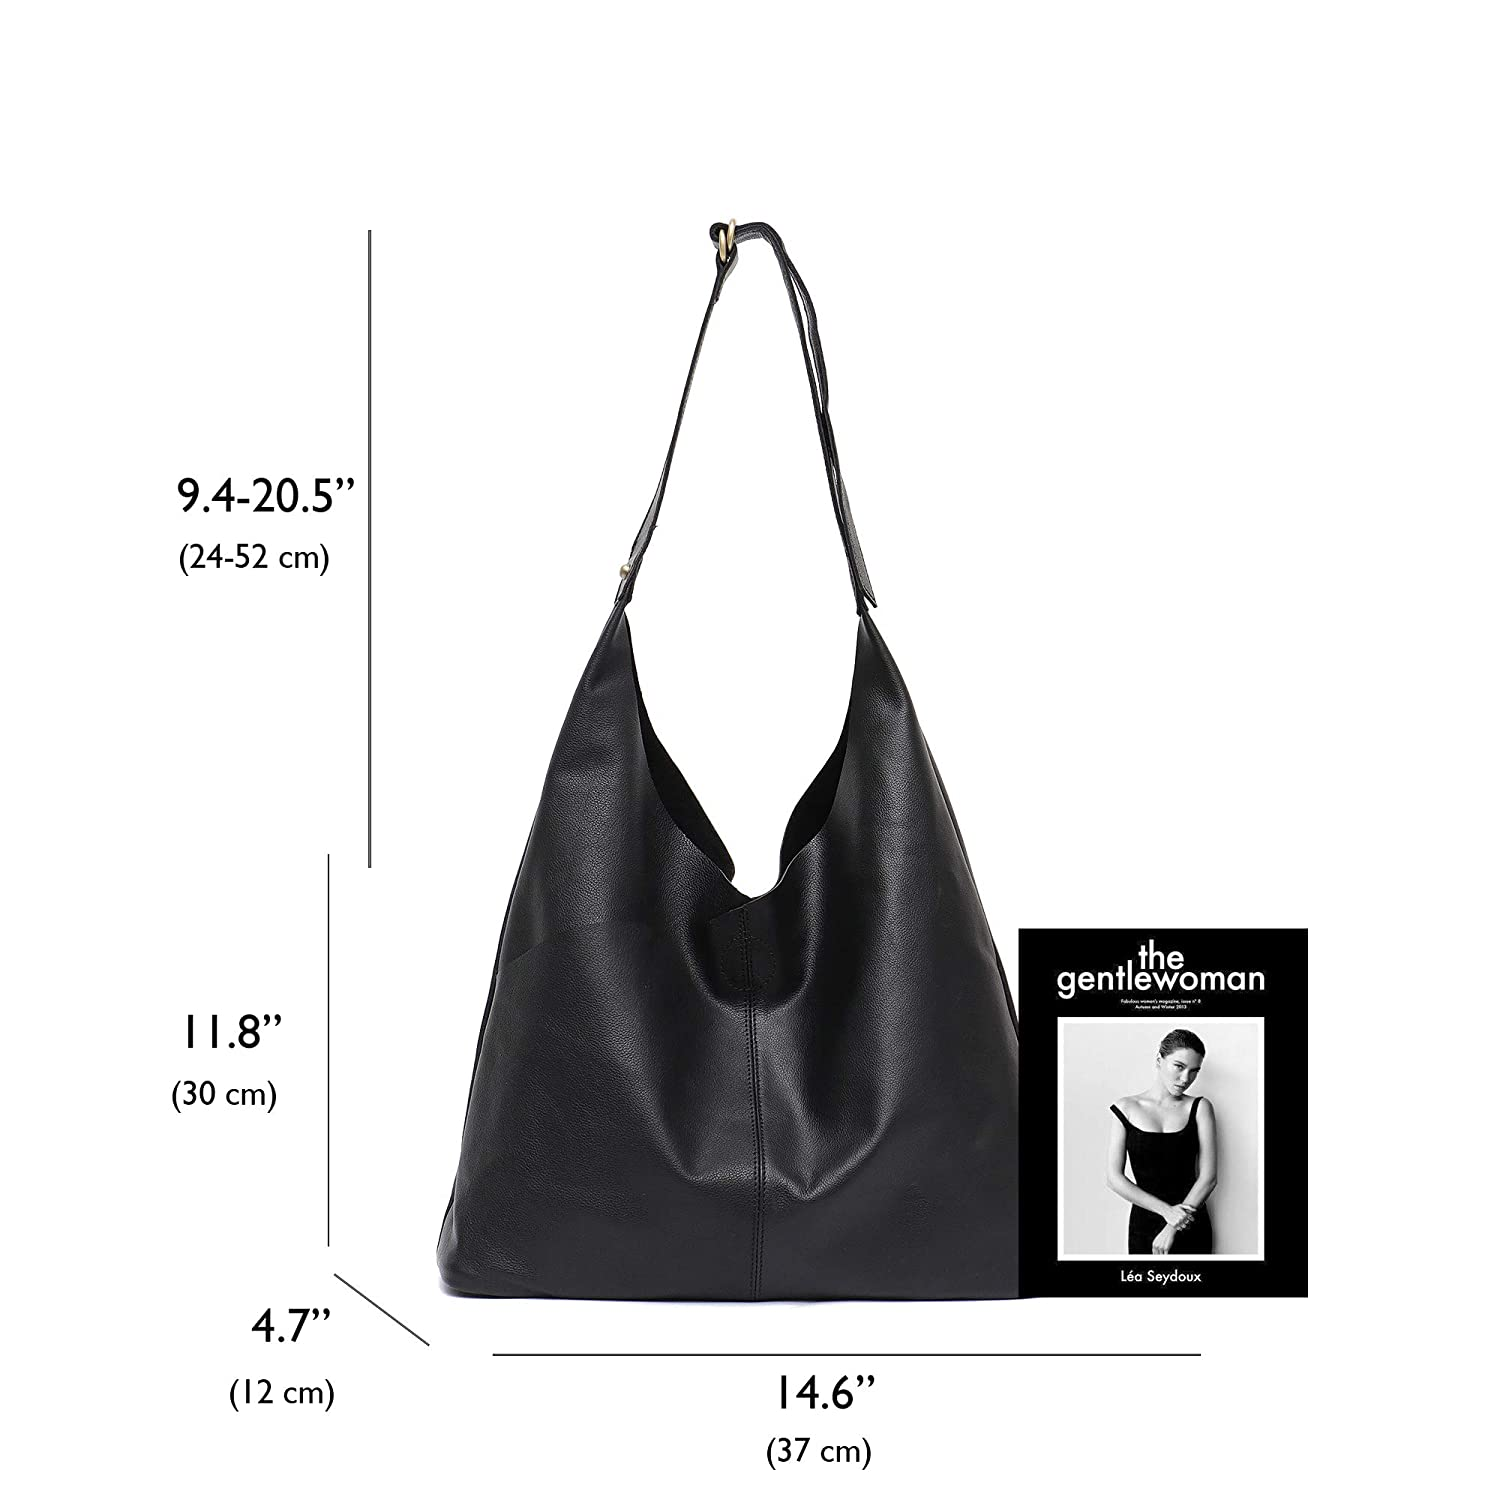 355f42ae998d Amazon.com  Genuine Leather Women s Shoulder Bag STEPHIECATH Large Casual  Soft Real Leather Skin Tote Vintage Snap Basket Carry Bag (BLACK)  Musical  ...